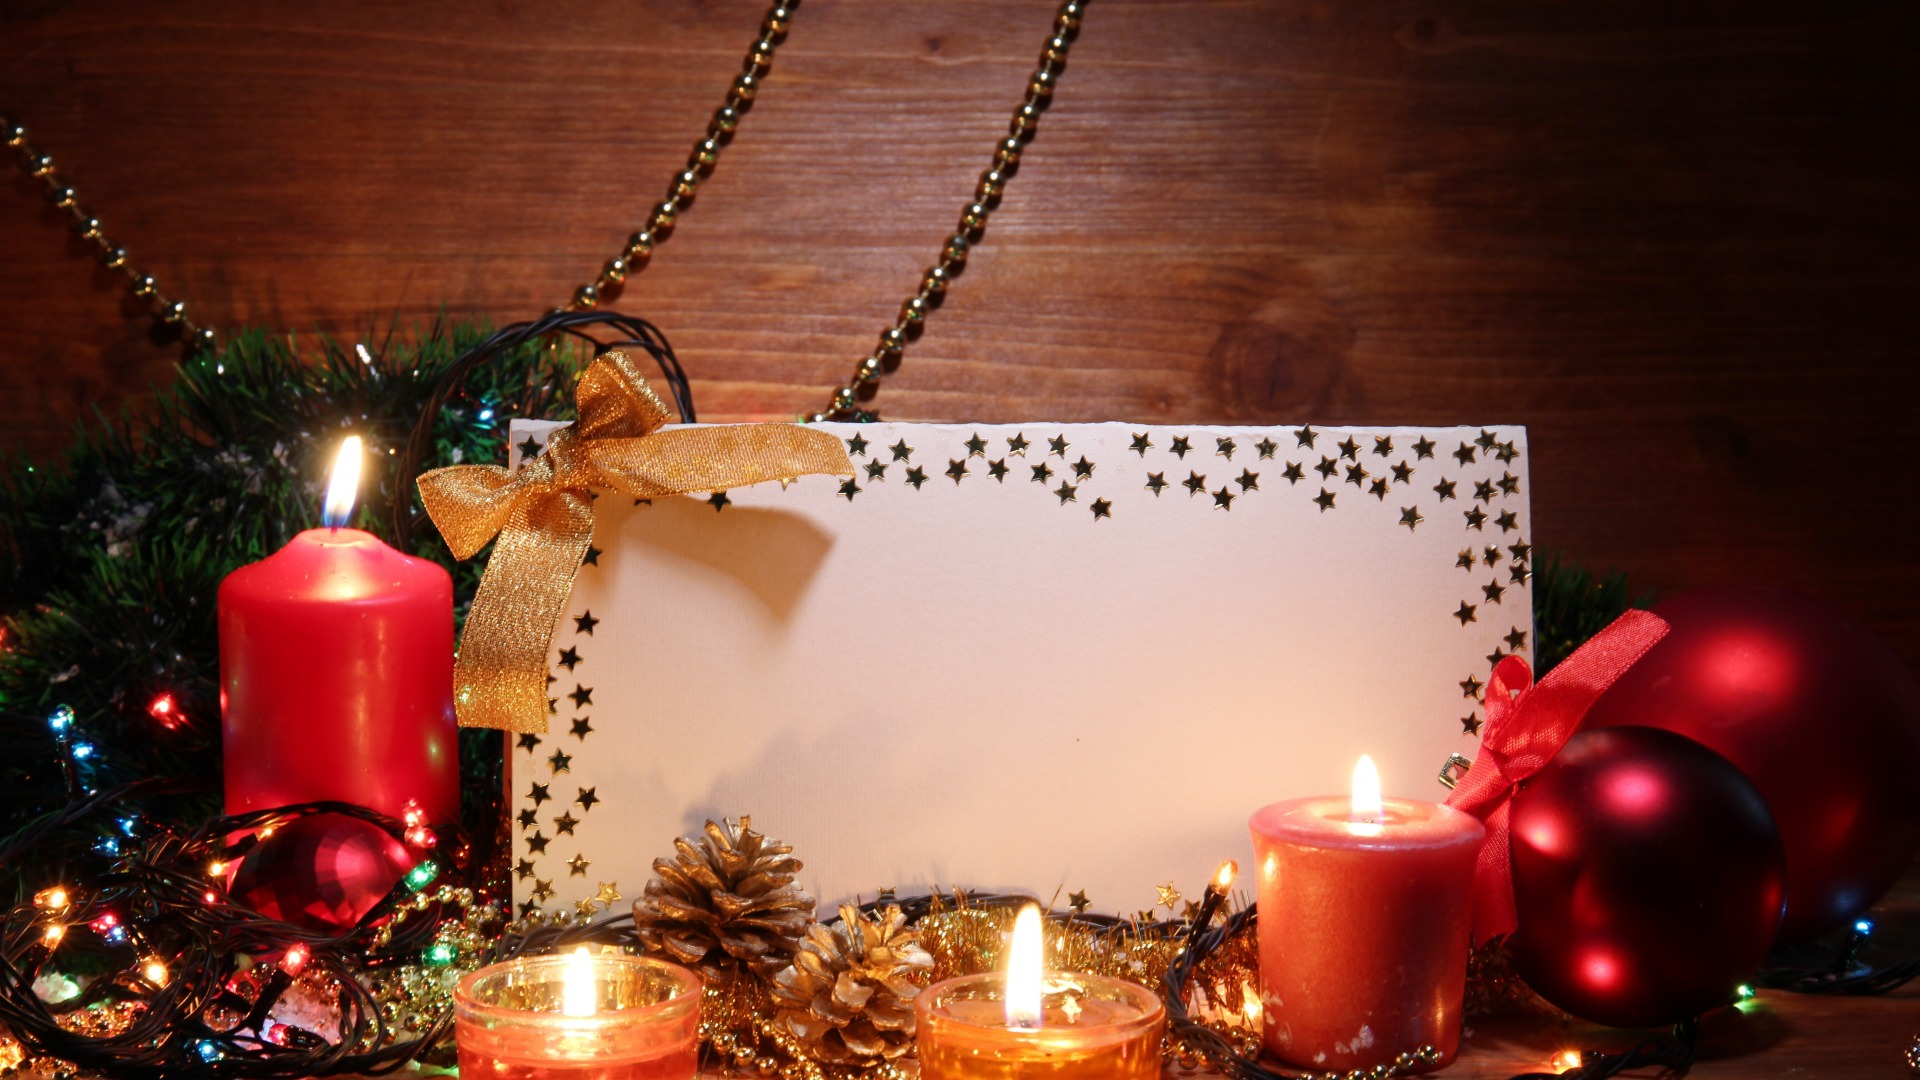 Download-balls-candles-tape-stars-twilight-garland-tinsel-bow-bumps-card-Christm-wallpaper-wp3804808